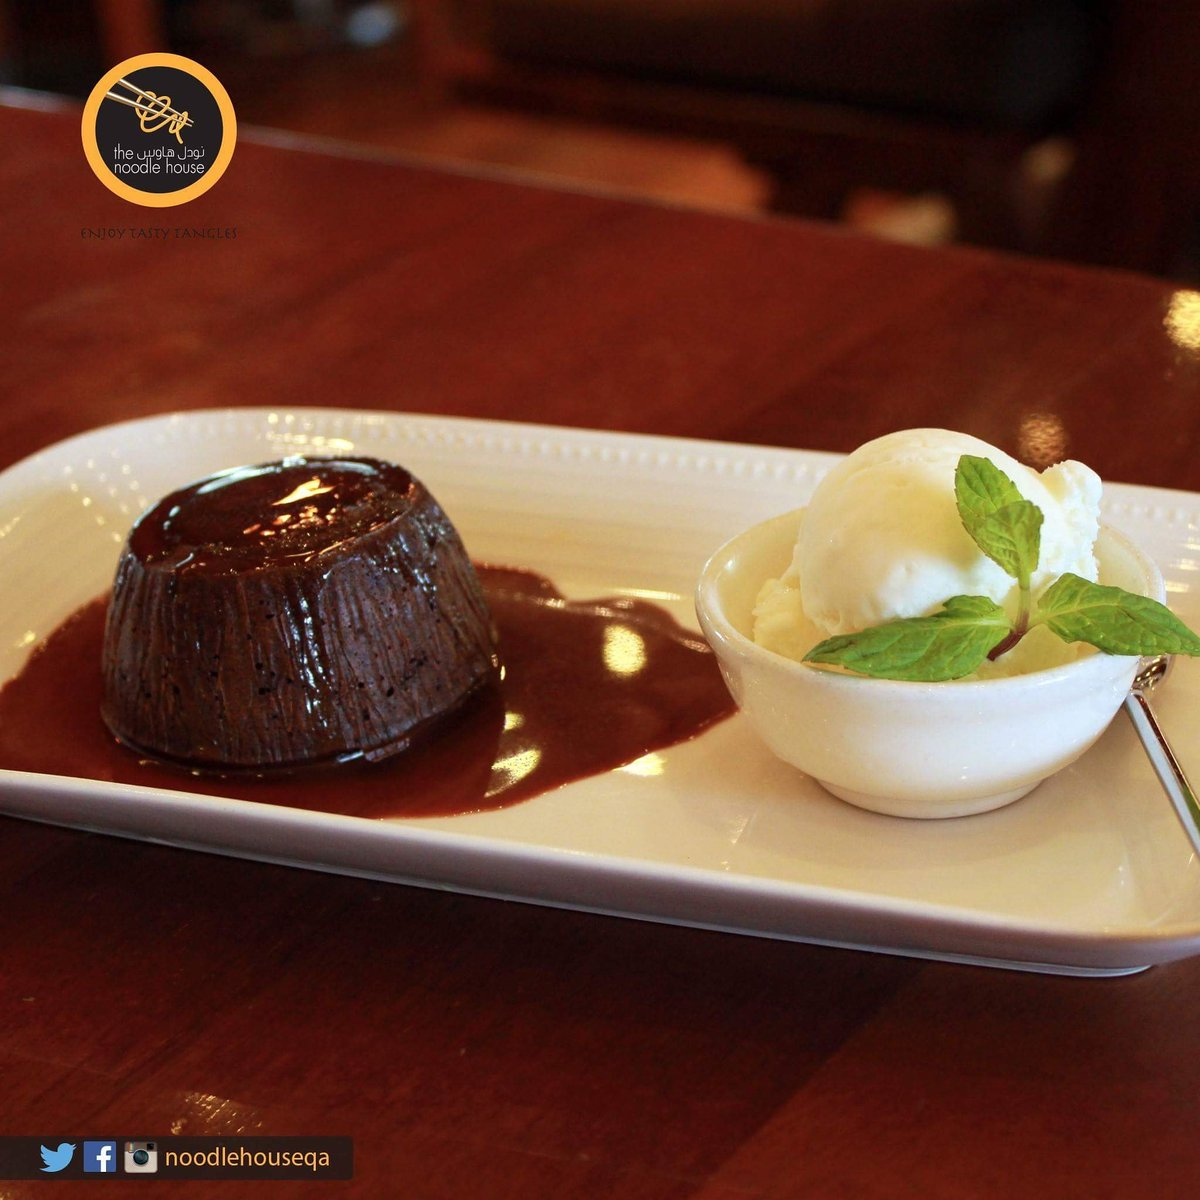 We could give up chocolate, but we're not quitters! Try Hot chocolate lava cake from The Noodle House ;) https://t.co/fa1AWSqi9s